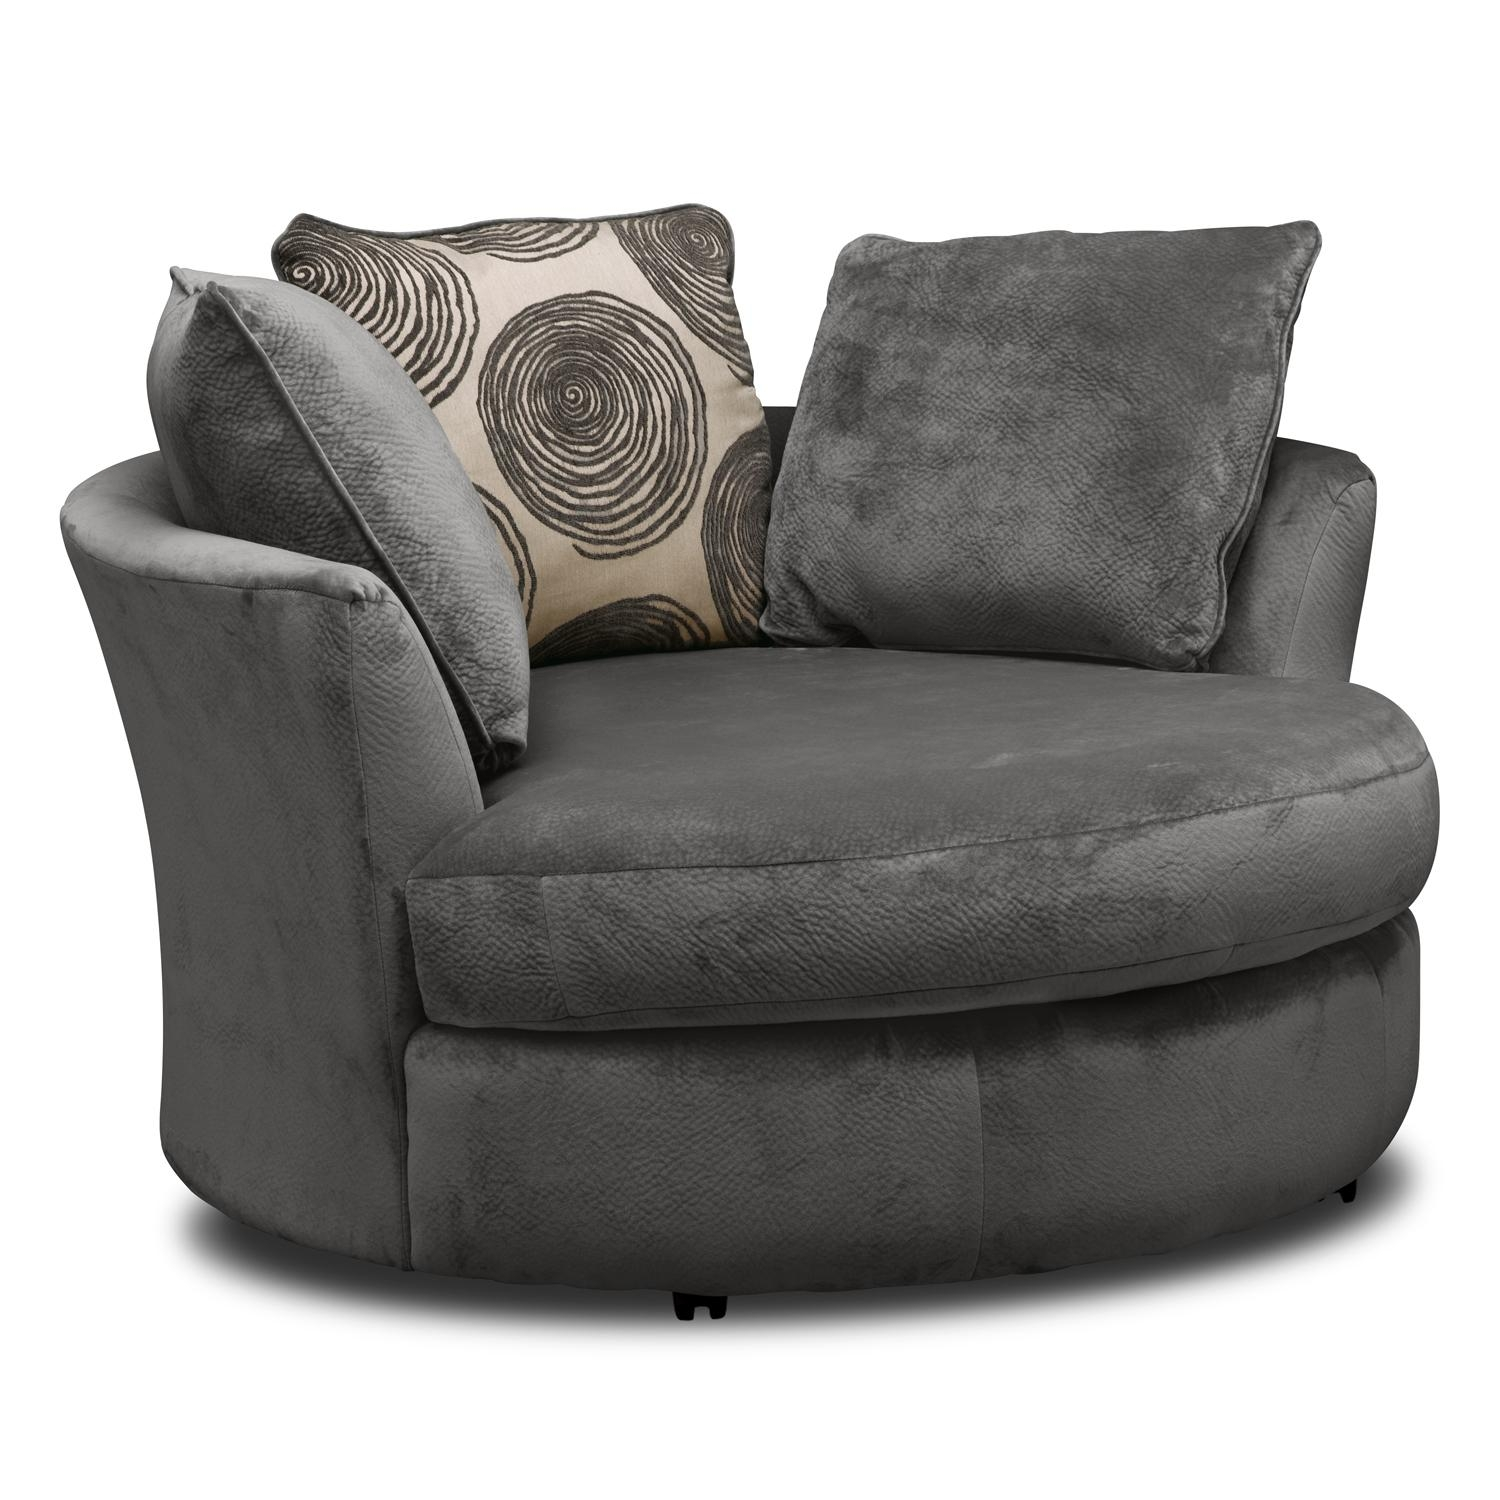 20 Best Collection of Round Sofa Chair